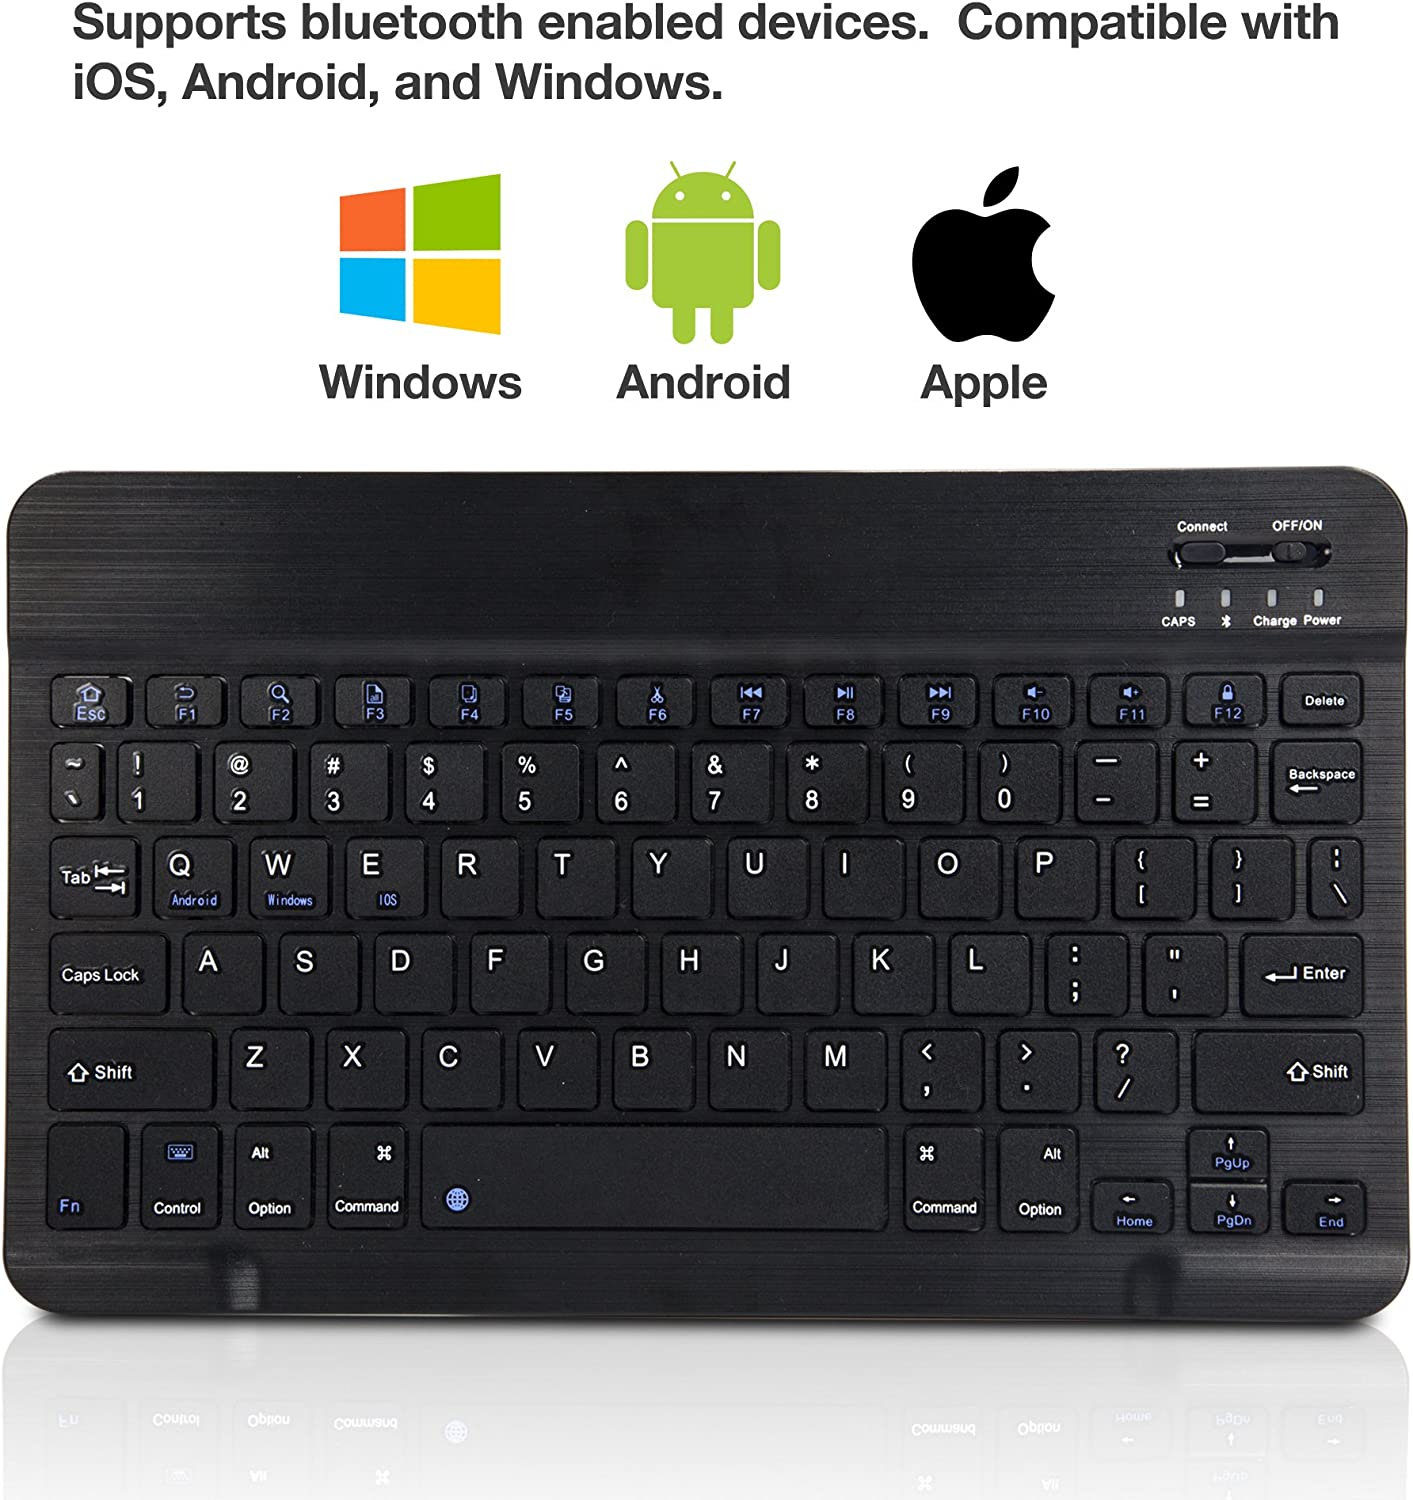 Portable Keyboard with Integrated Commands for iBall Slide Elan 3x32 iBall Slide Elan 3x32 Keyboard BoxWave Jet Black SlimKeys Bluetooth Keyboard